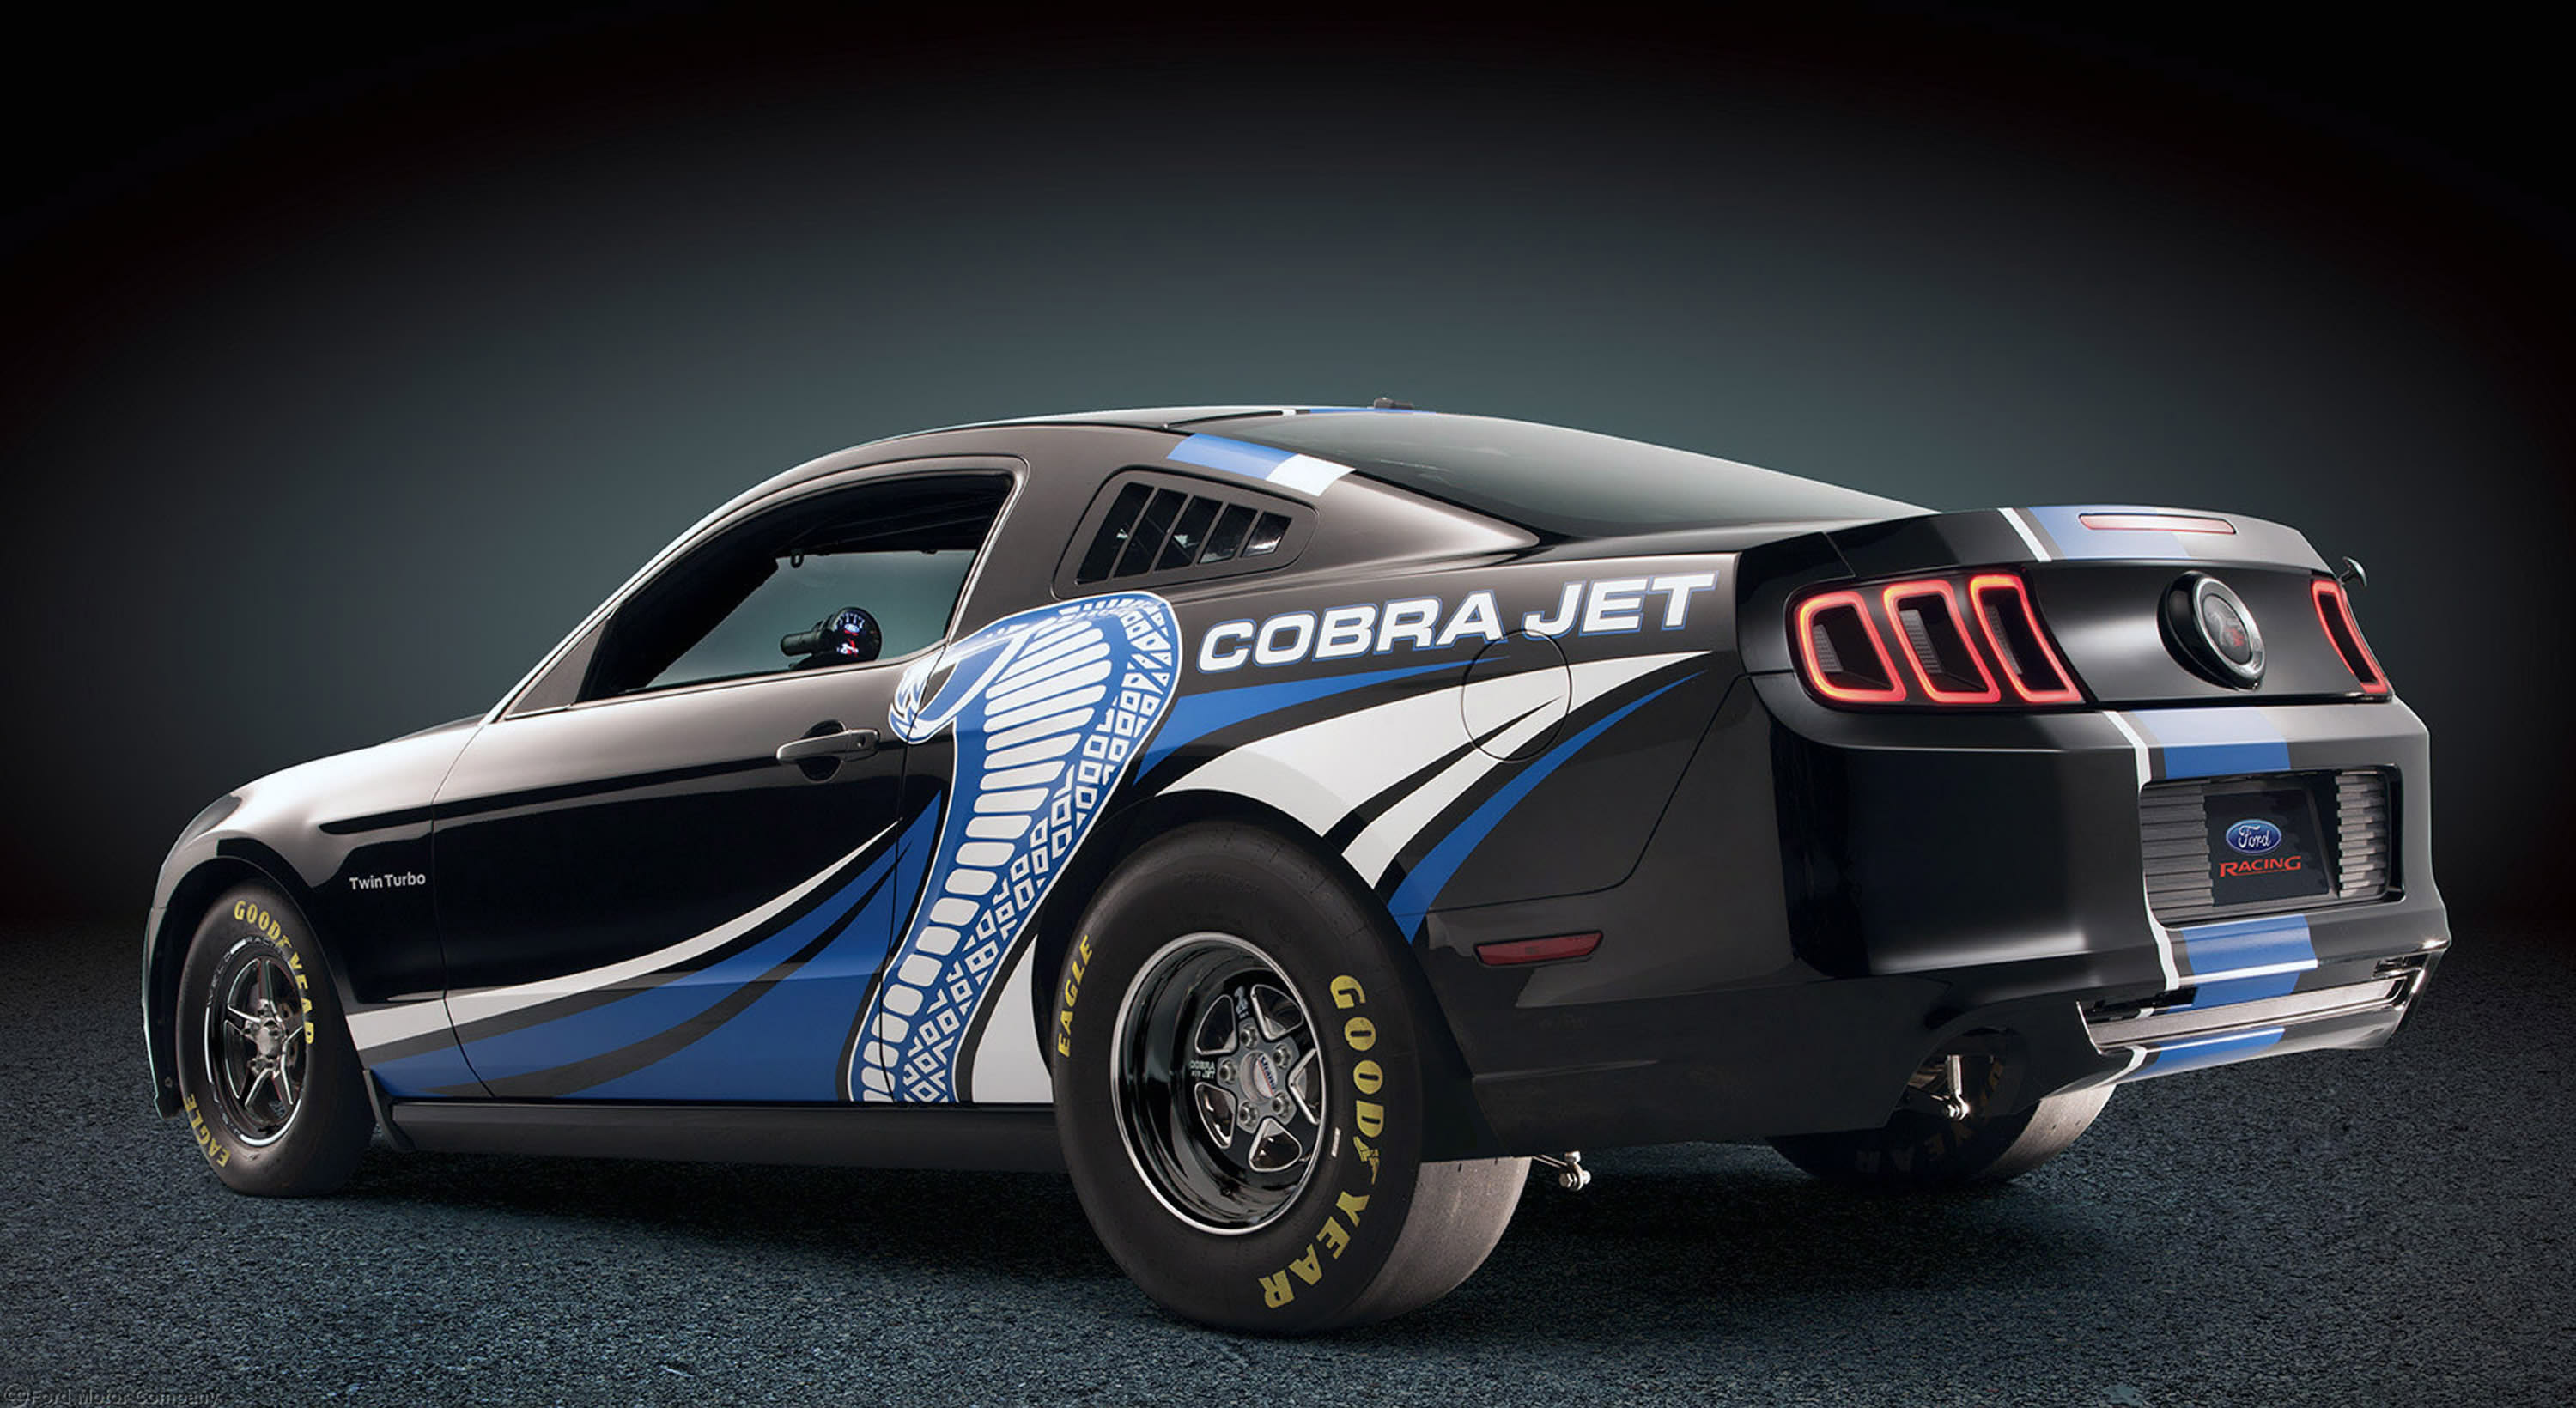 2013 Ford Mustang Cobra Jet Twin-Turbo Concept race racing hot rod rods muscle s